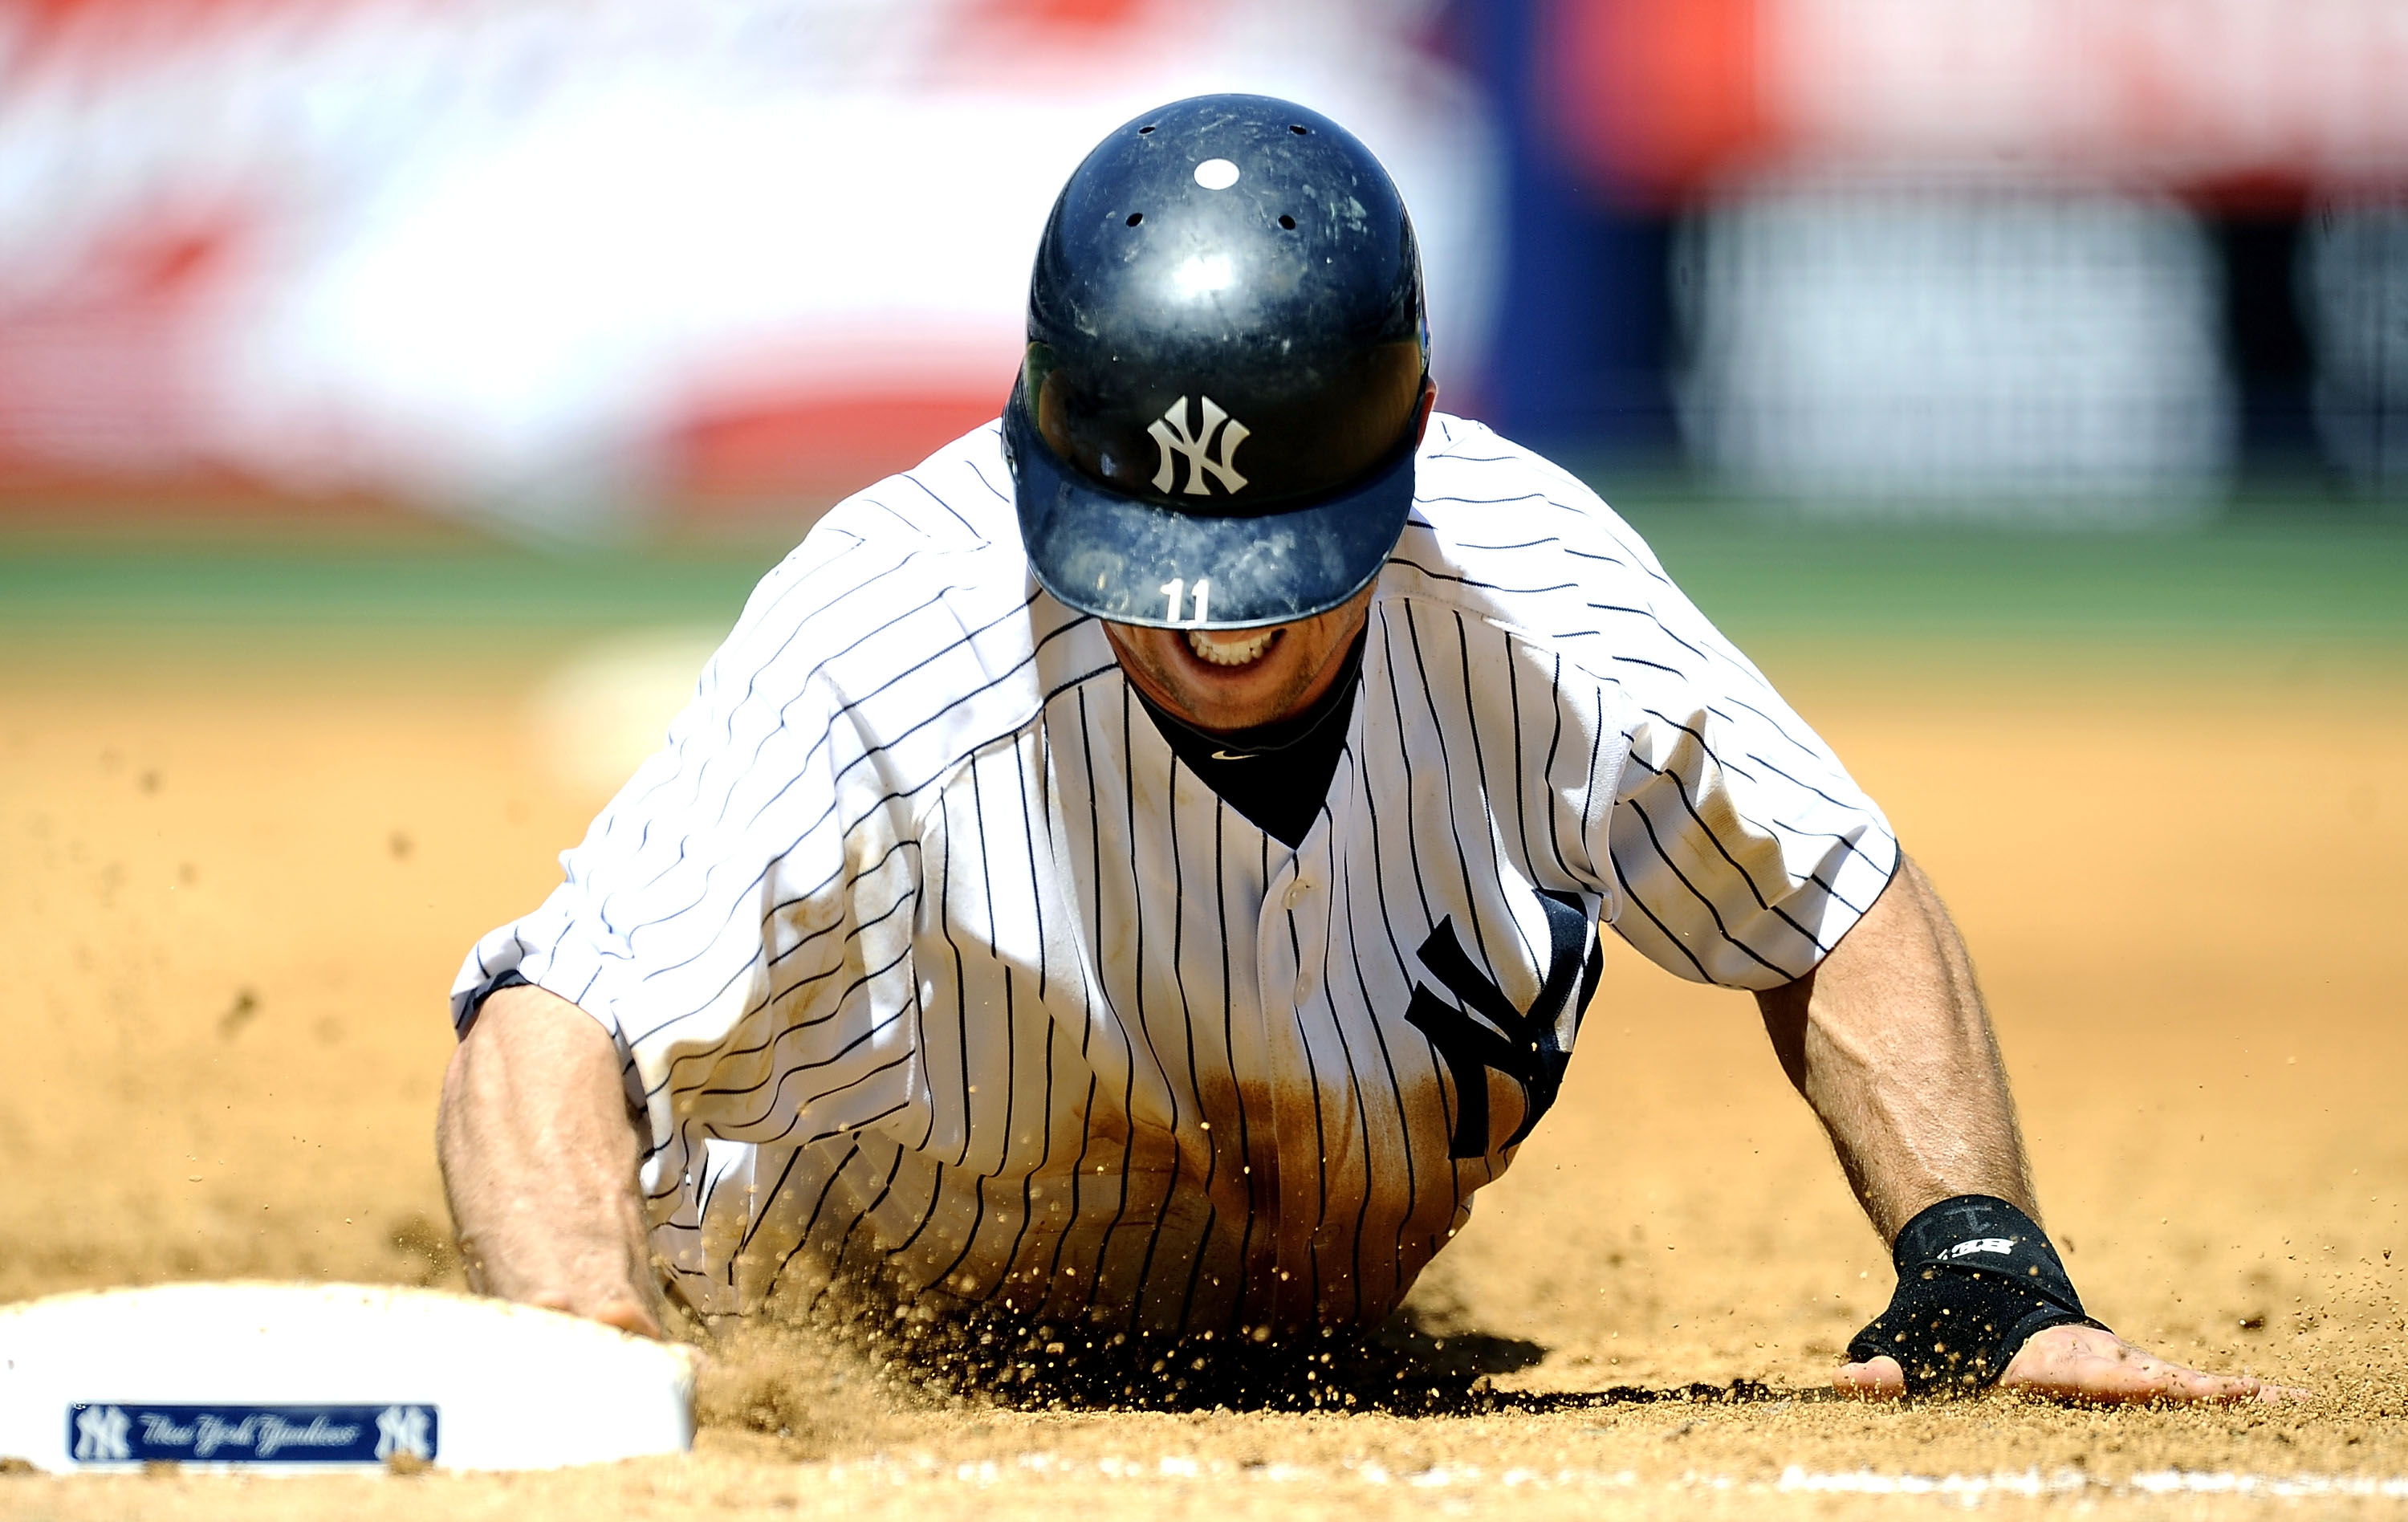 NEW YORK - MAY 05:  Brett Gardner #11 of the New York Yankees dives back to first against the Baltimore Orioles at Yankee Stadium on May 5, 2010 in the Bronx borough of New York City  (Photo by Jeff Zelevansky/Getty Images)